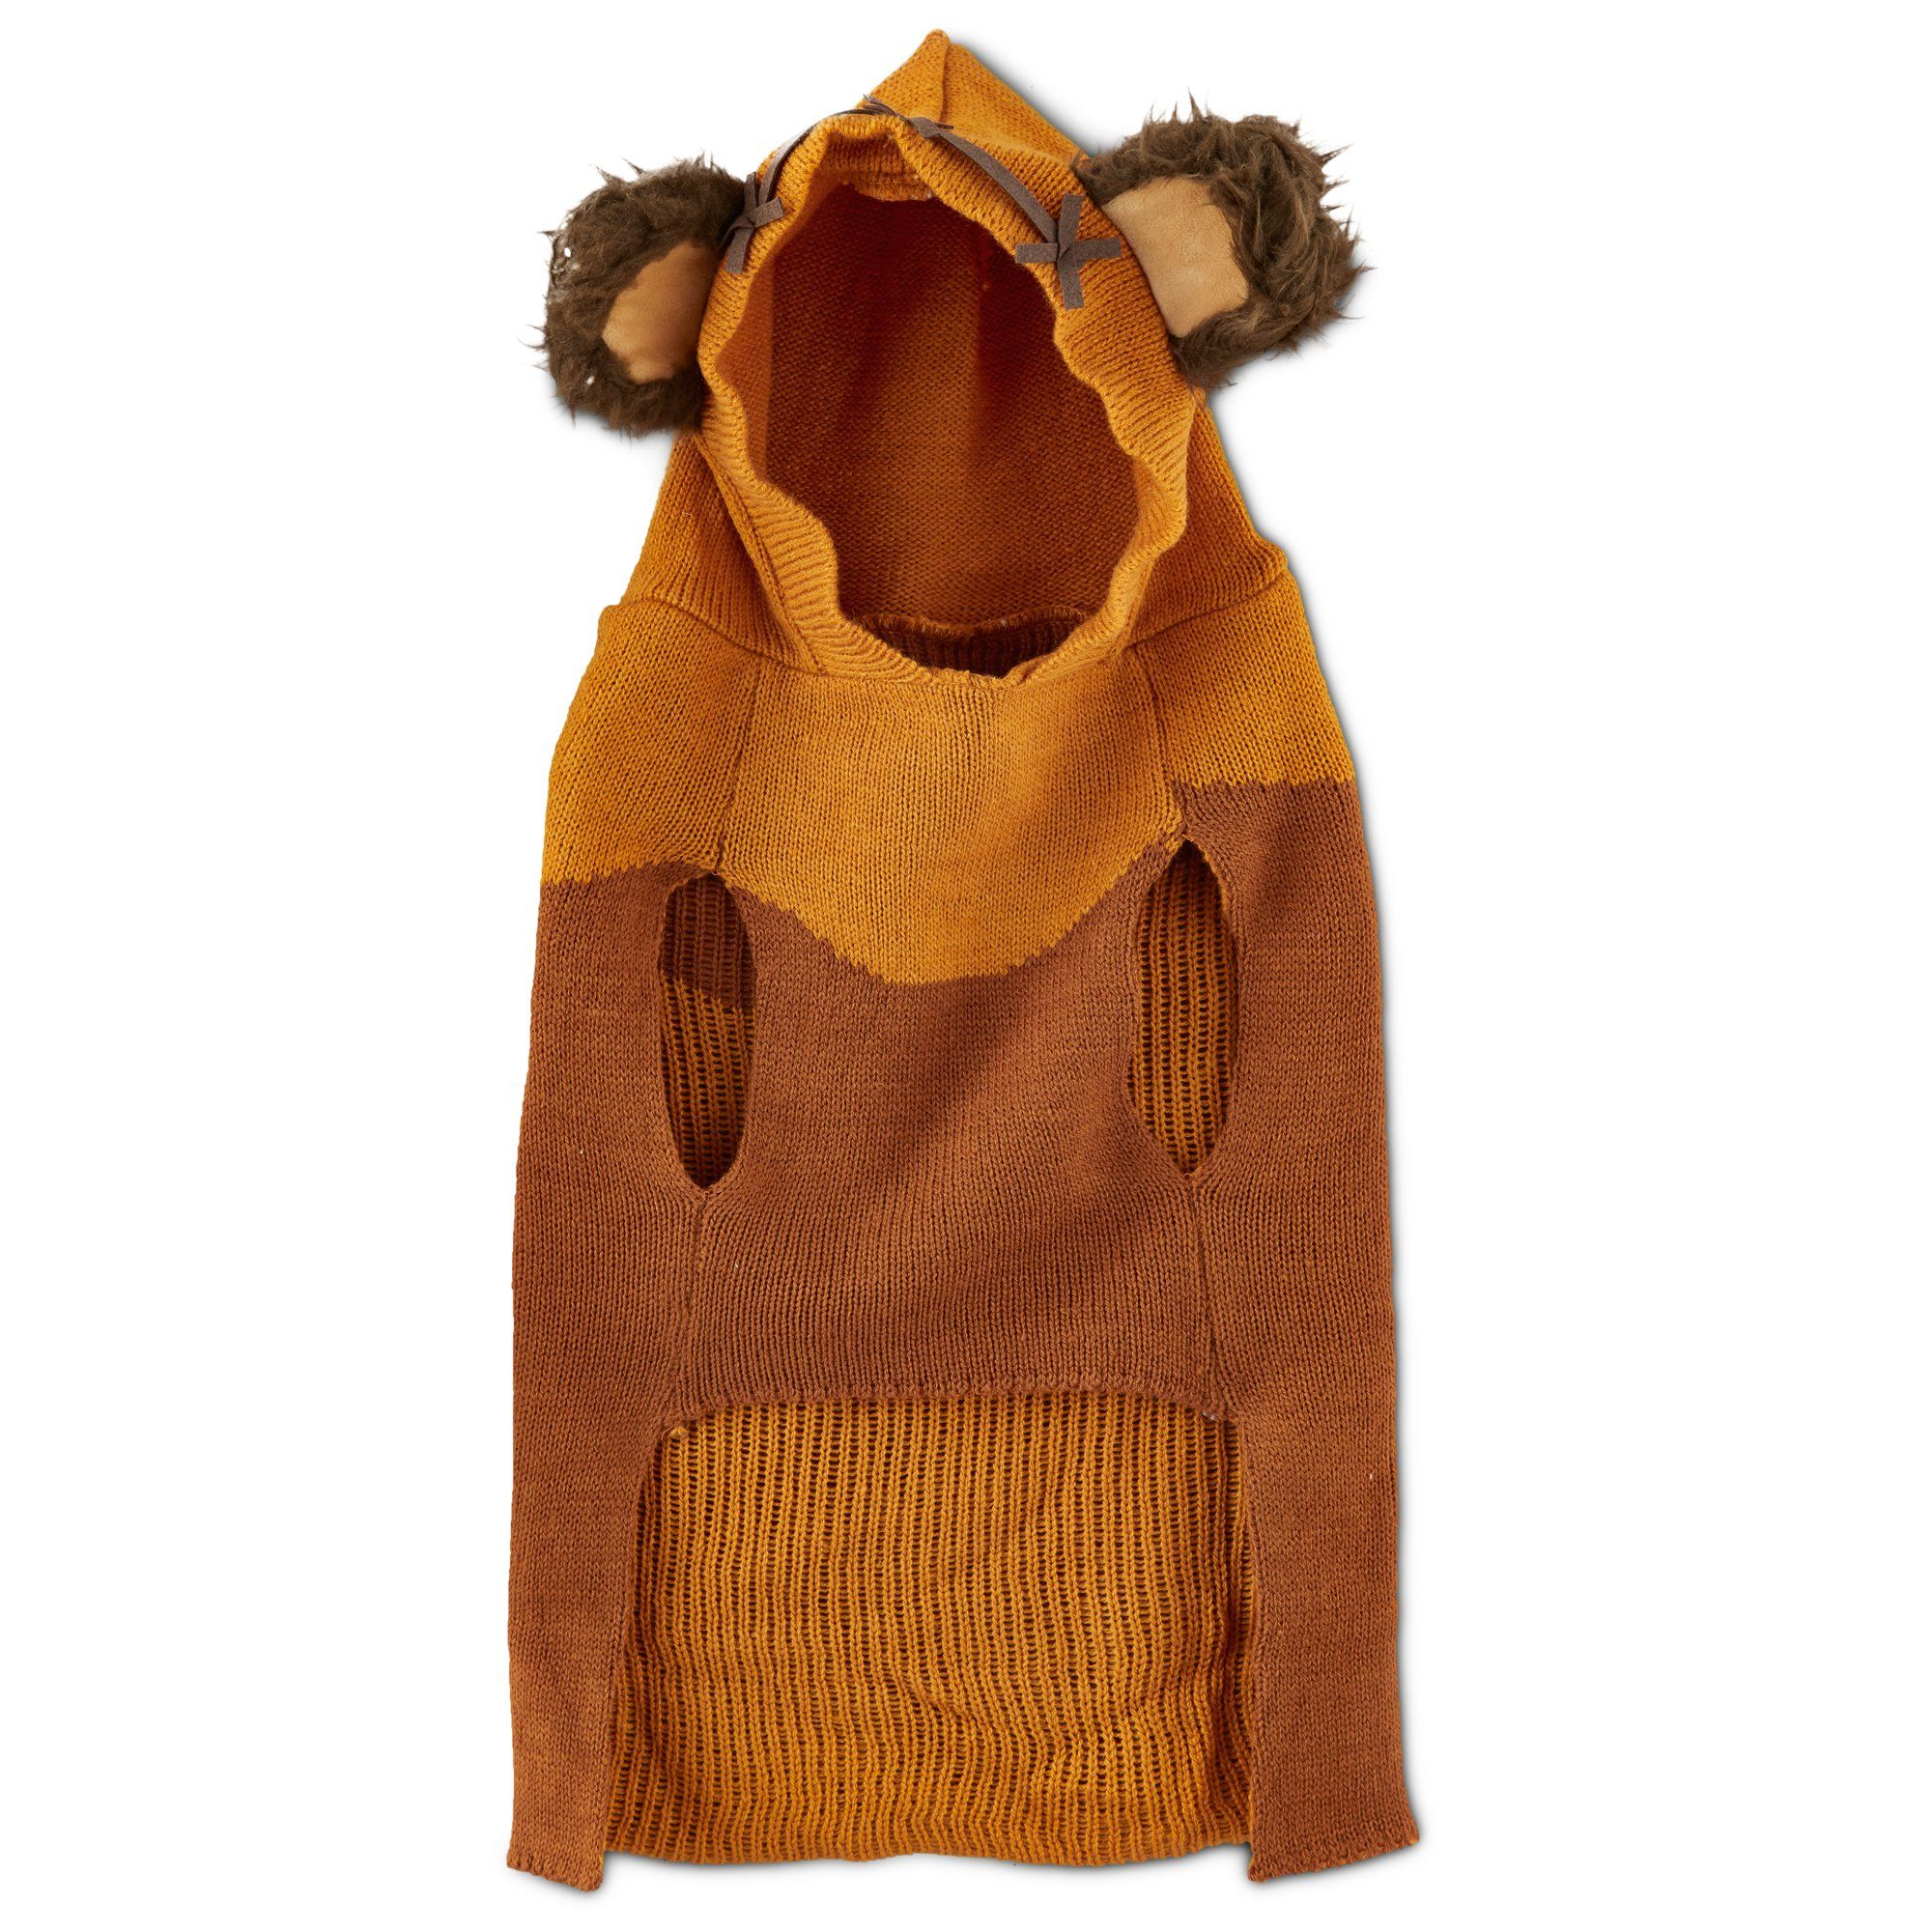 Star Wars Ewok Dog Sweater With Knit Hoodie Dog Ewok Dog - Hoodie will turn you into chewbacca from star wars